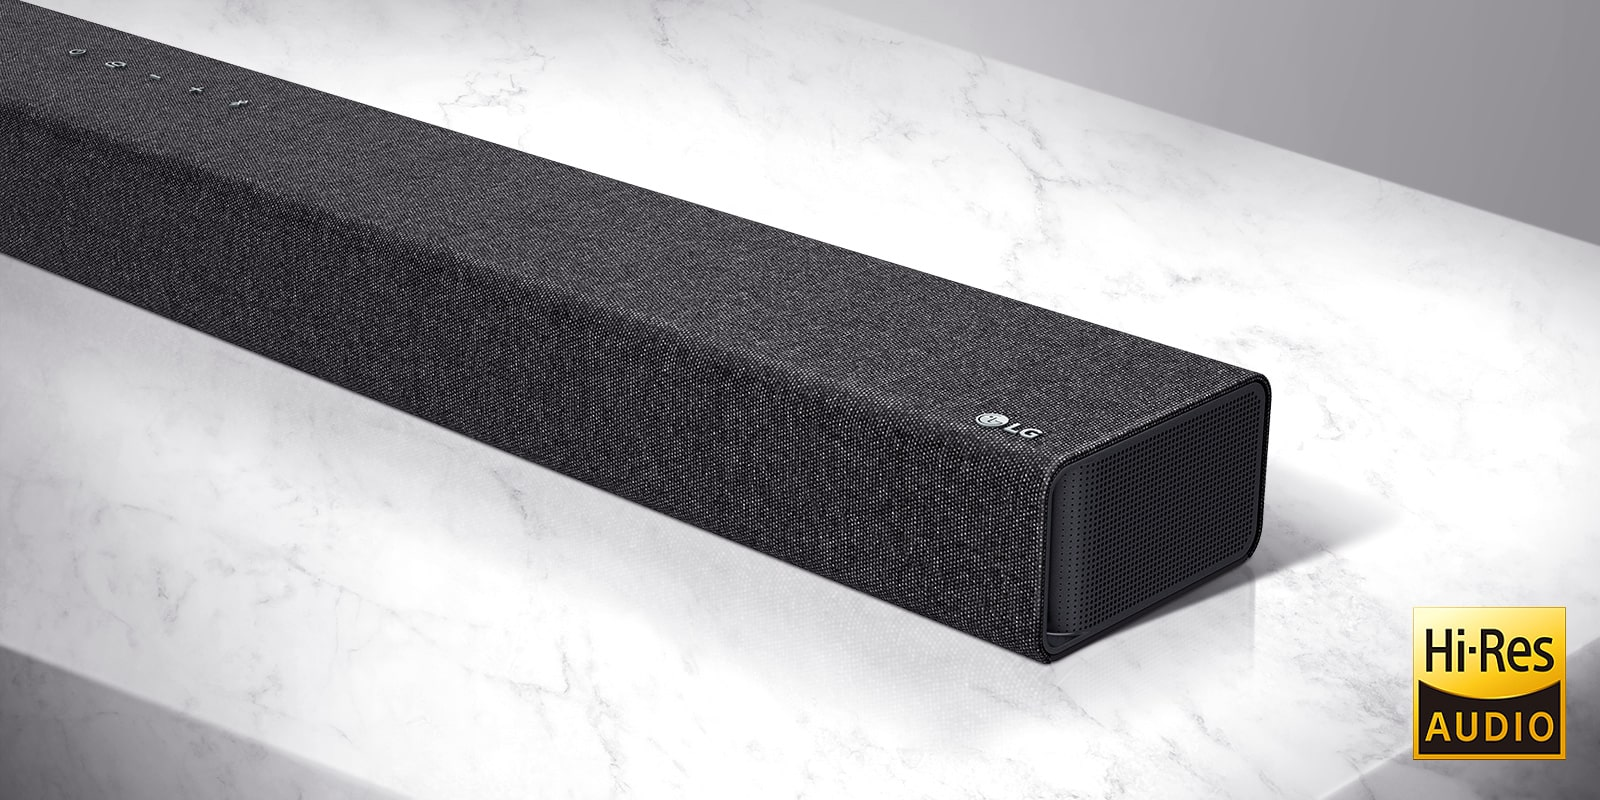 Close-up of LG Soundbar right side with LG logo on the bottom right corner of a product.